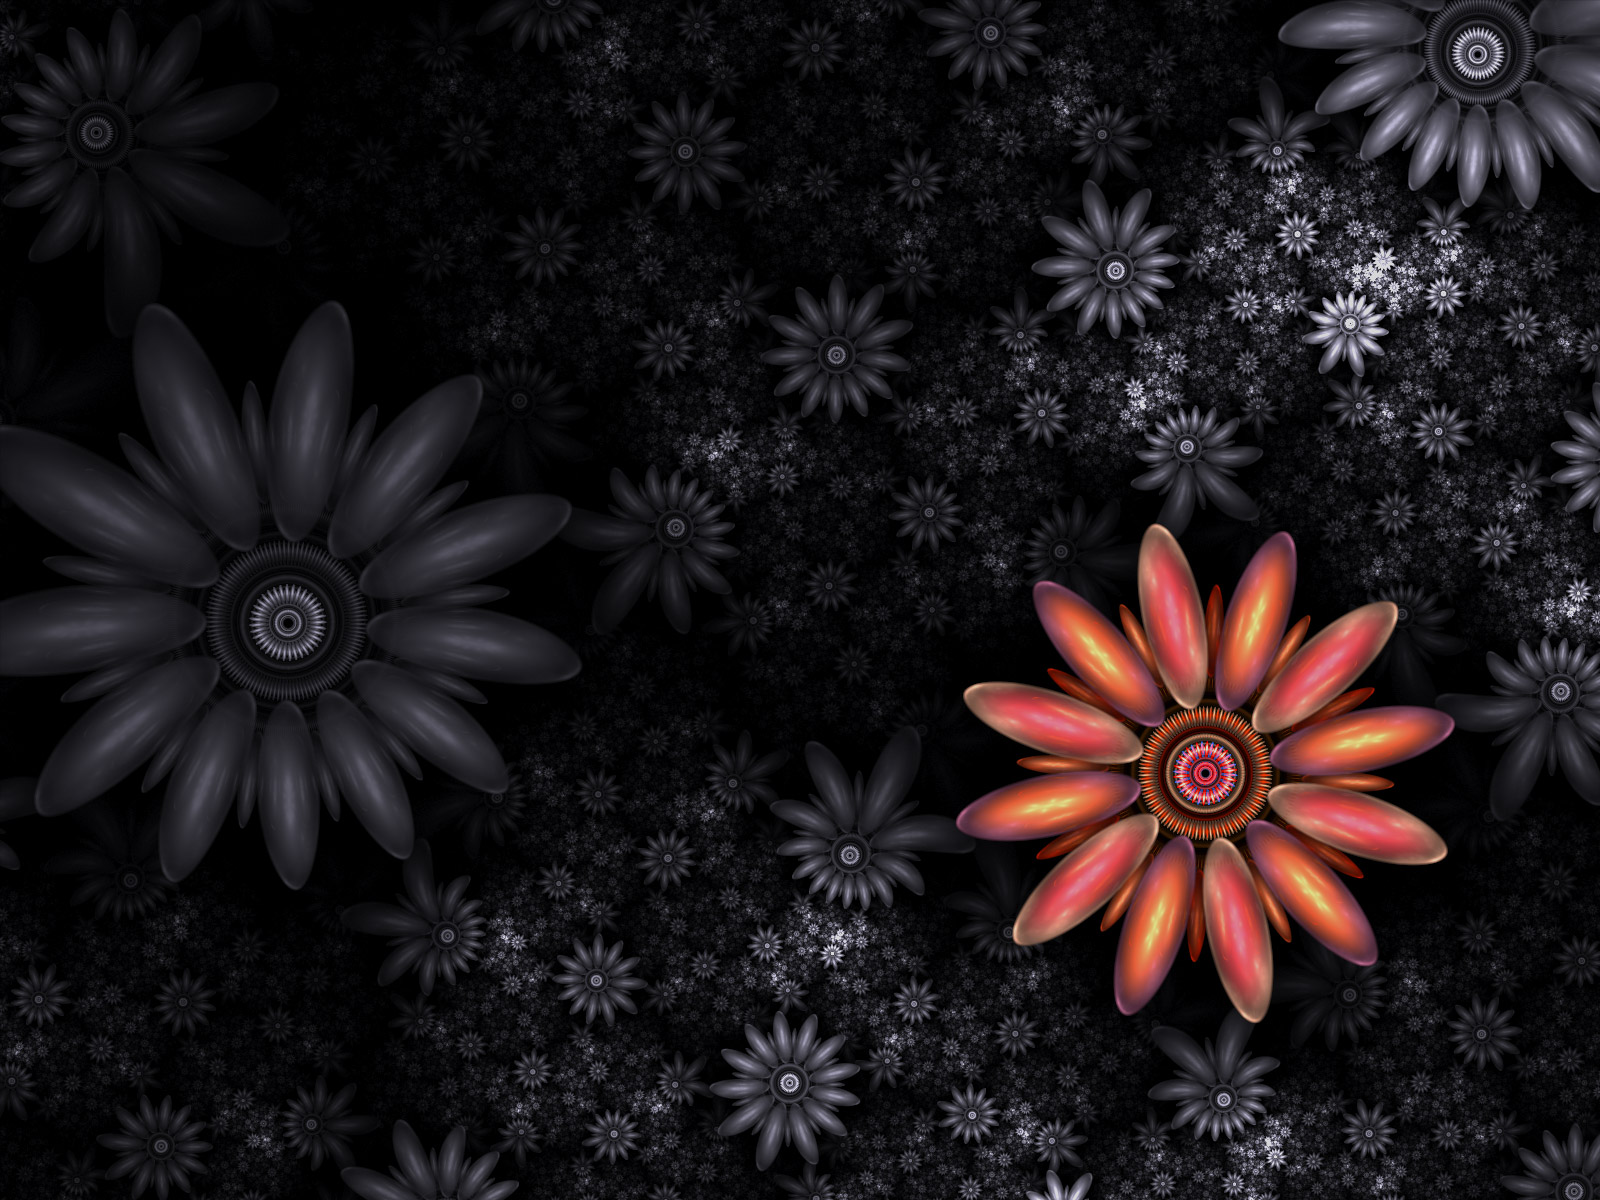 Fractal Flowers WP by parrotdolphin